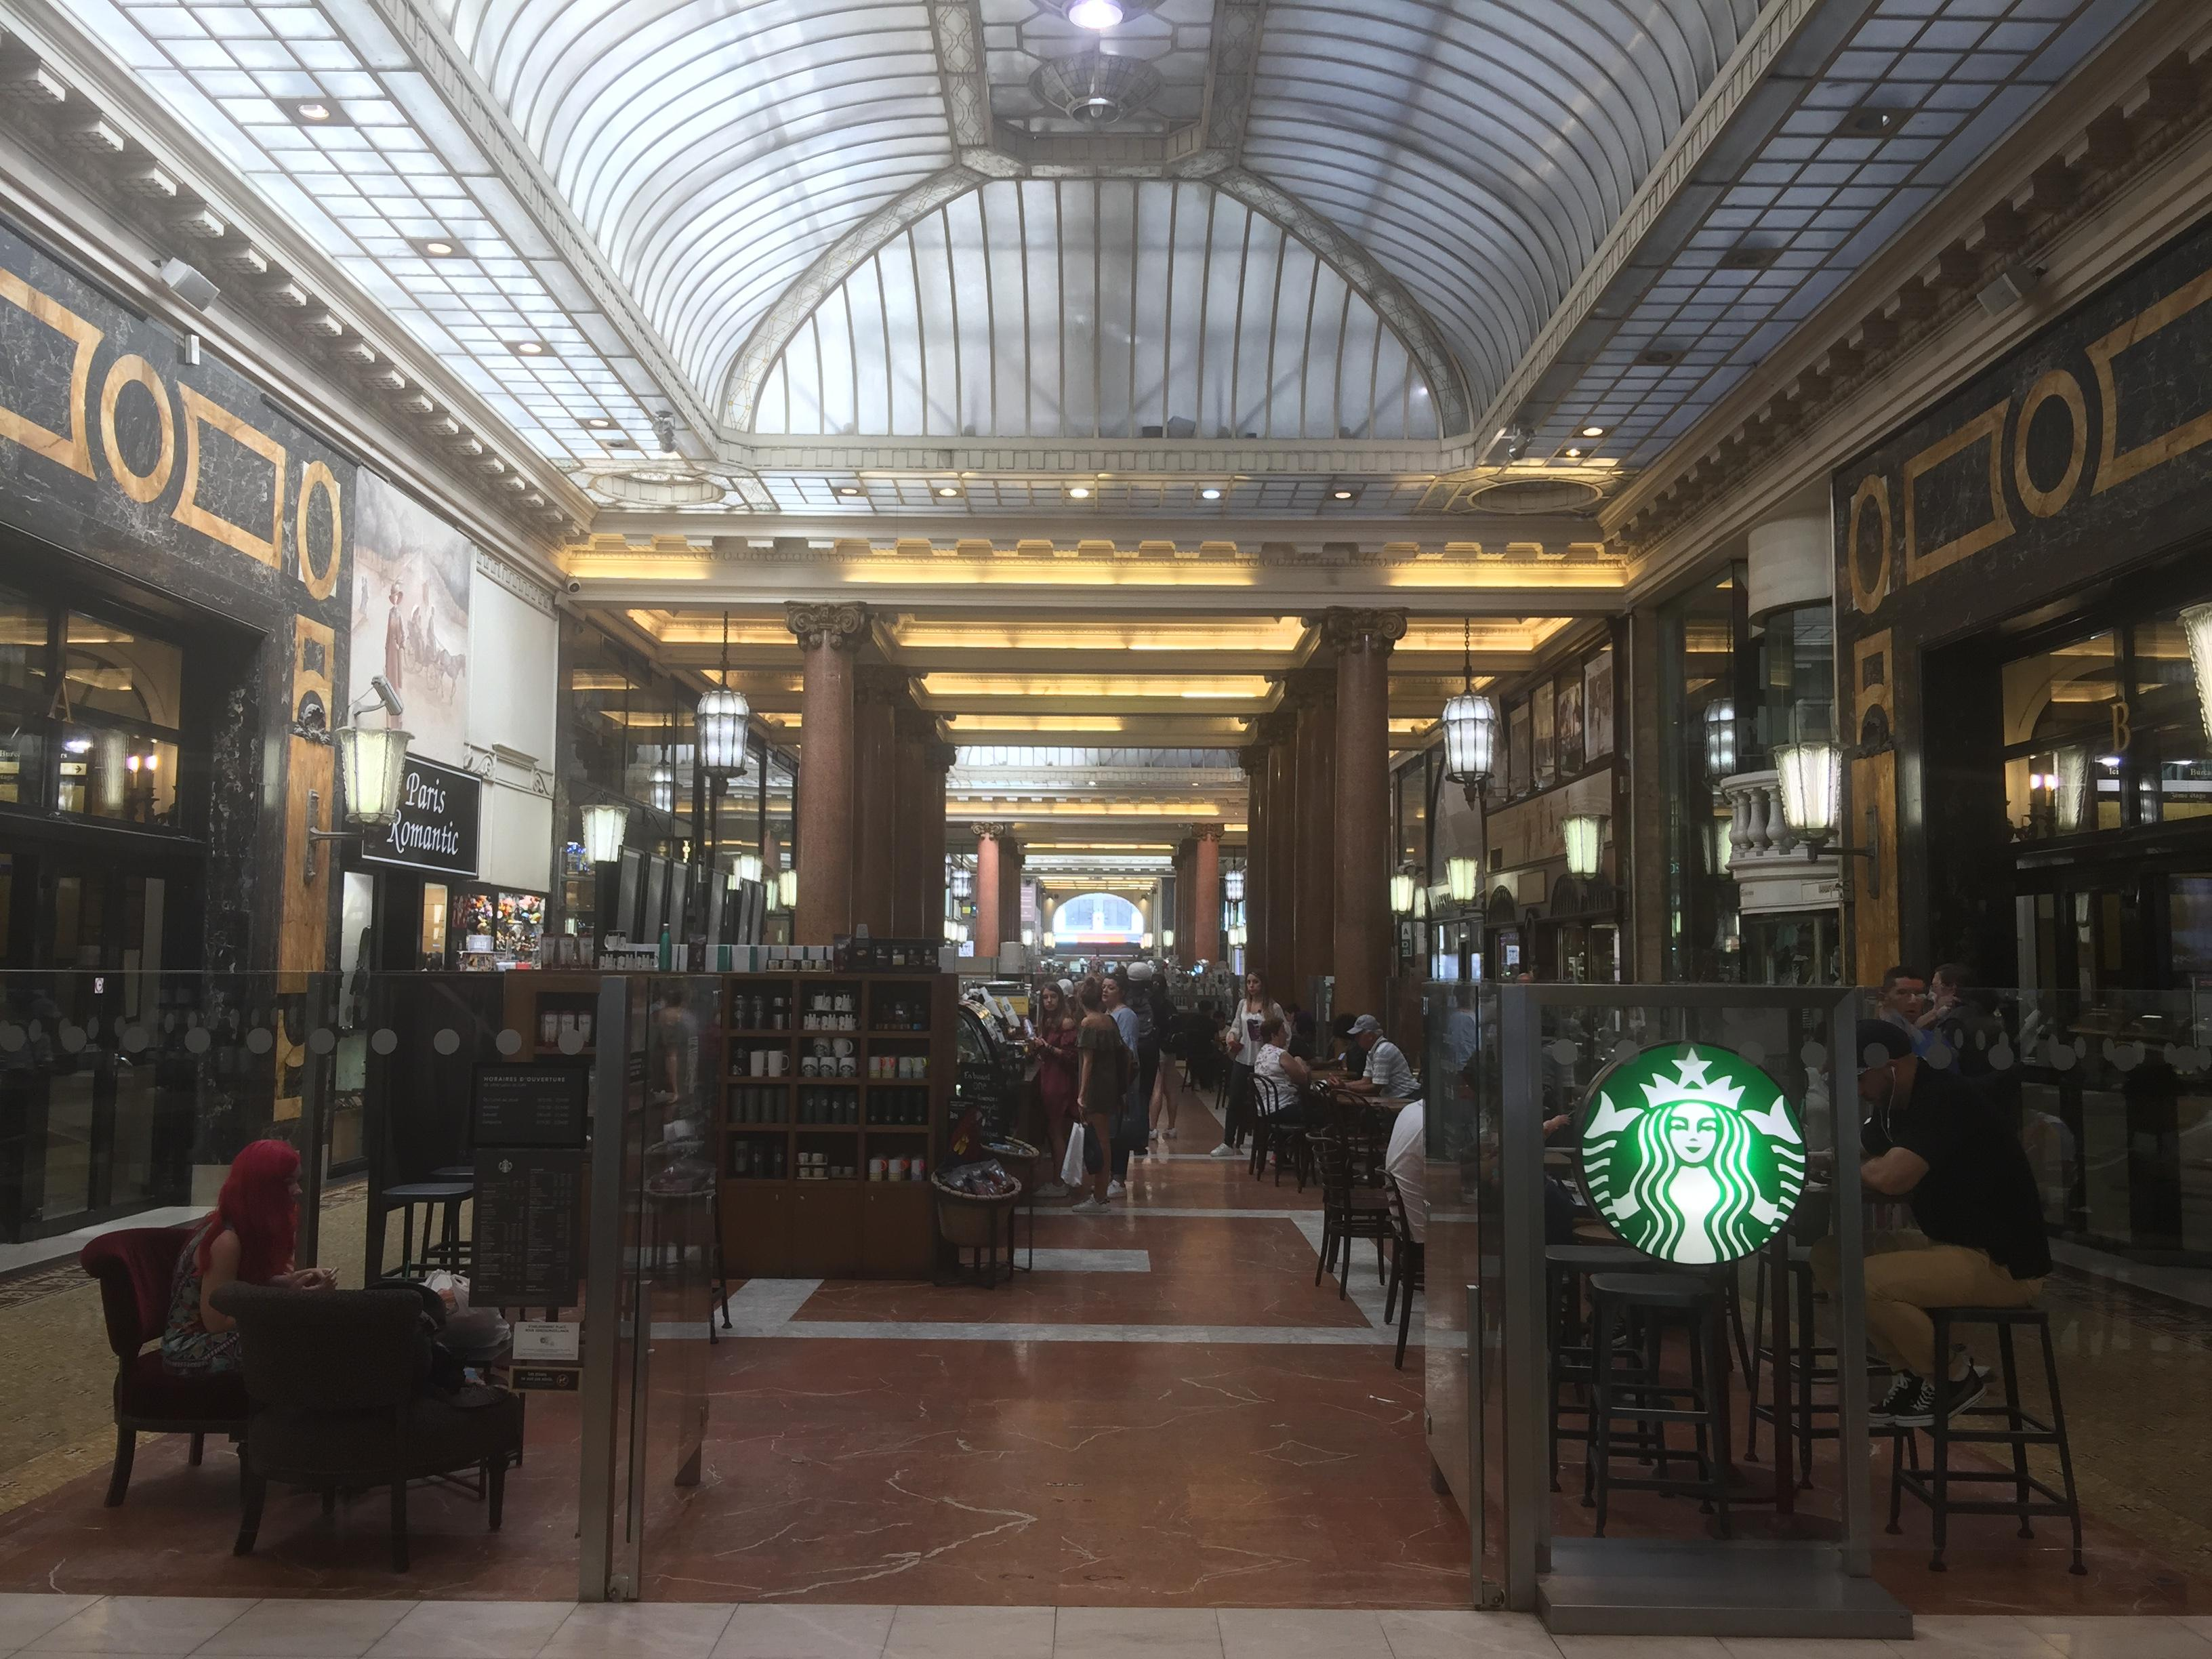 Arcades des Champs Elysees with a Starbucks